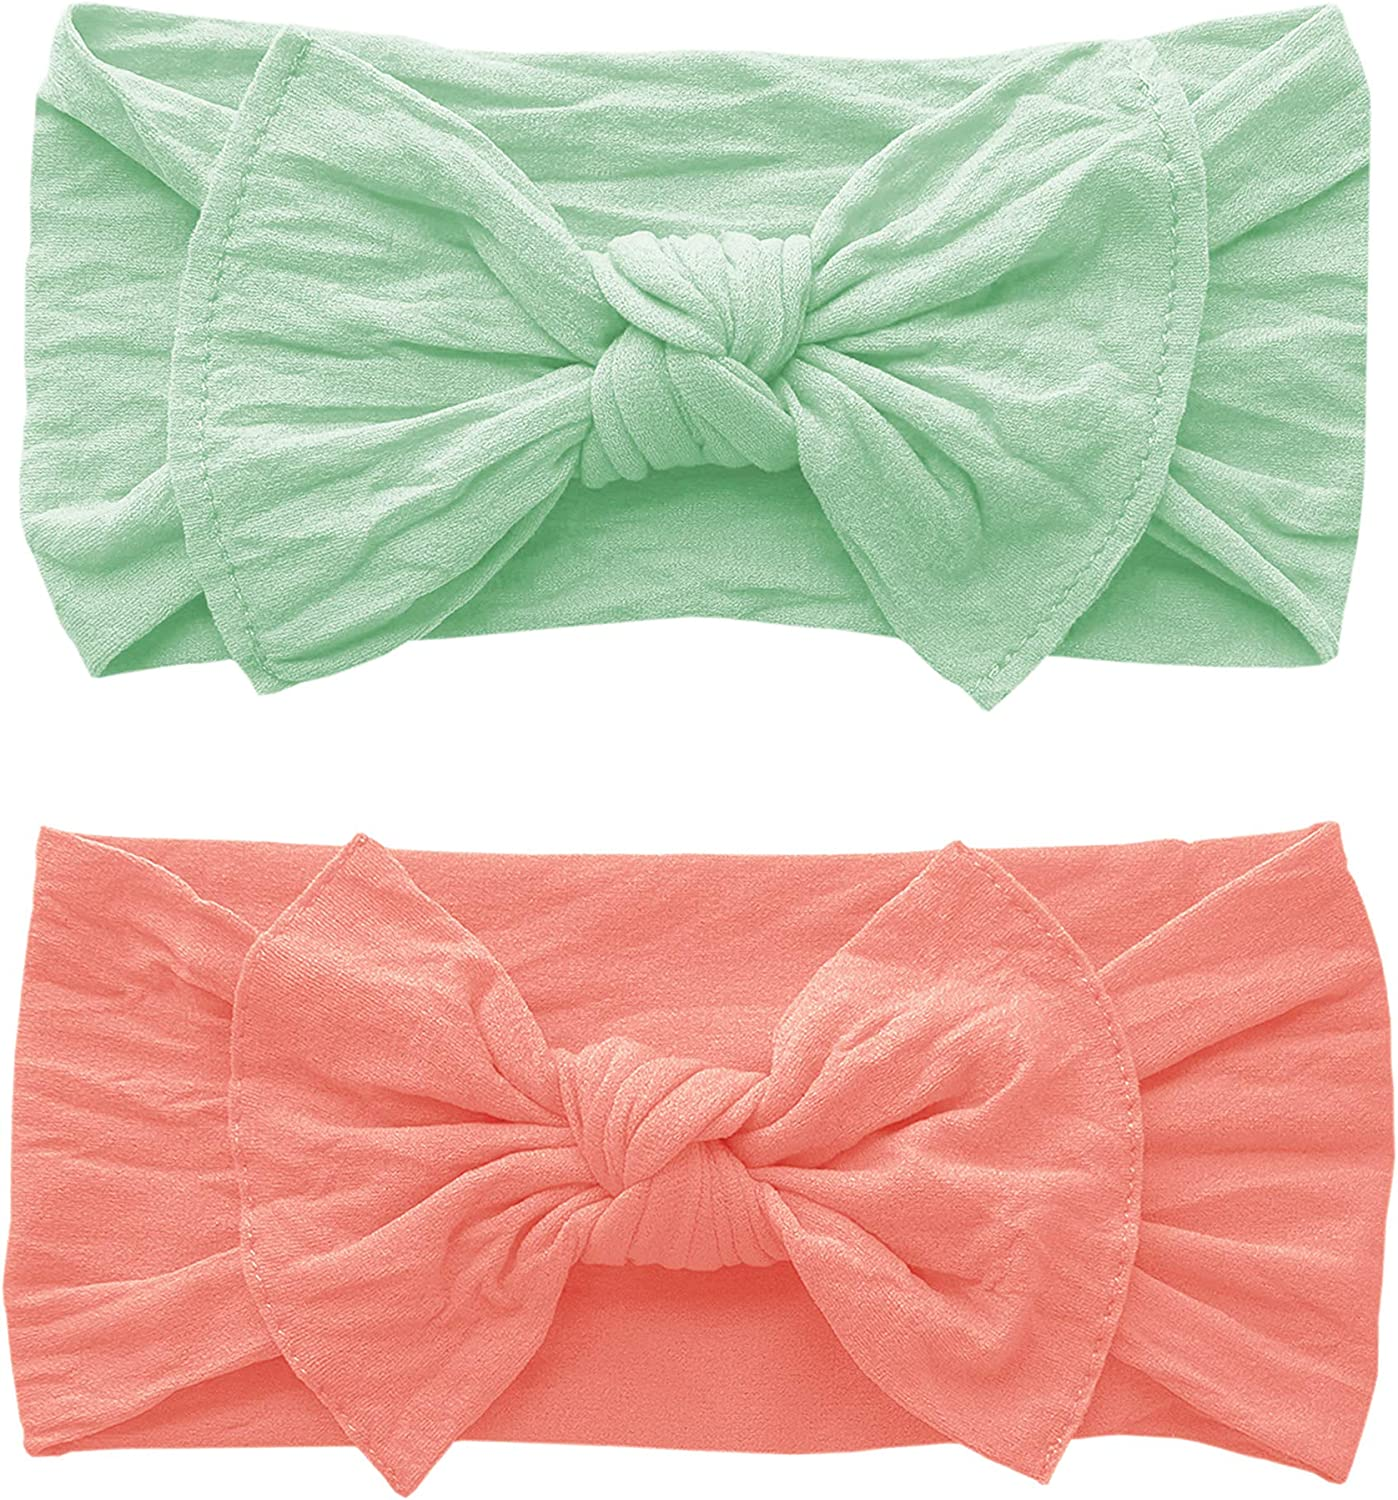 Baby Knot Headband Adjustable Waistband and Headband Baby Girl Outfit Baby Girl Clothes 100/% Organic Cotton Deco Mint Baby Bloomers